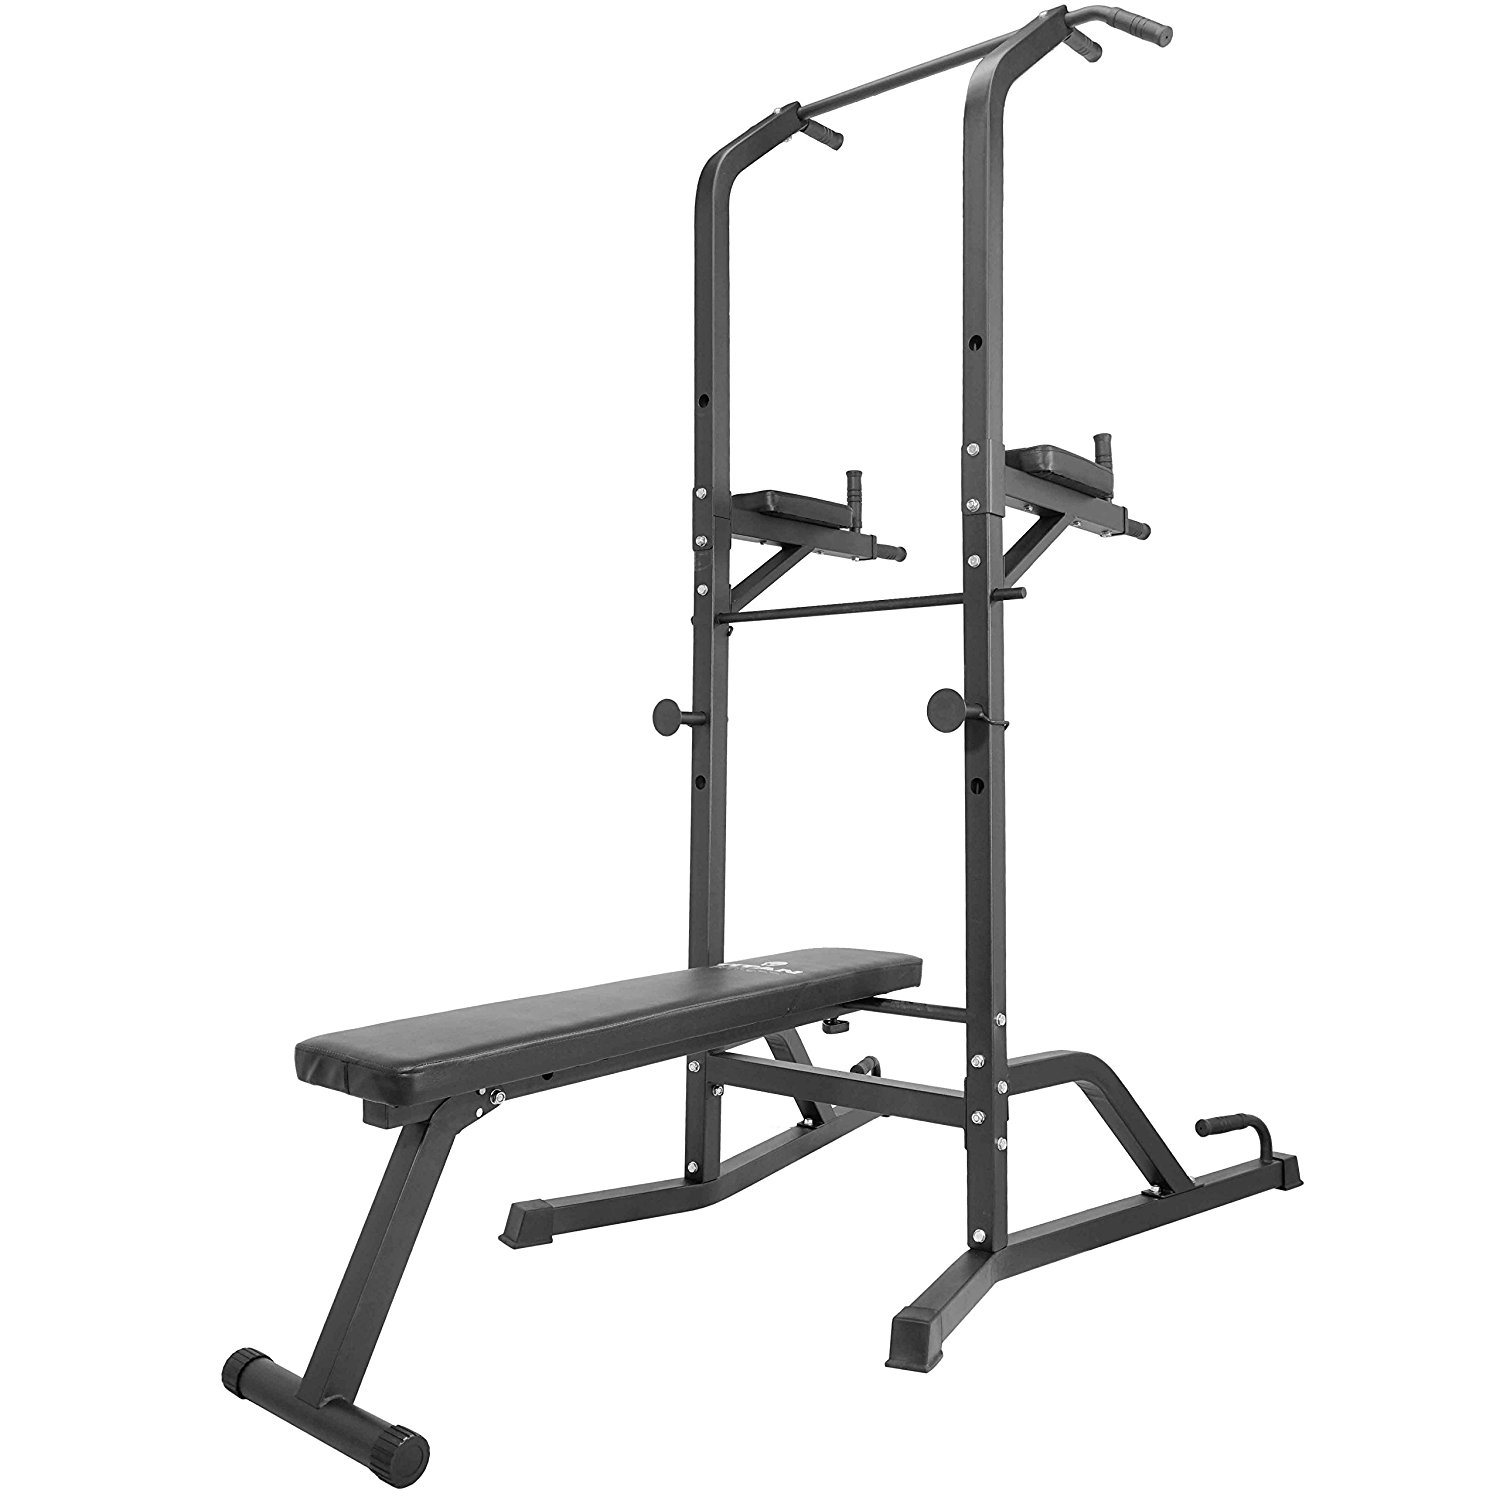 Titan Power Tower Bench Workout Station Pull Up Dip Station Home Gym